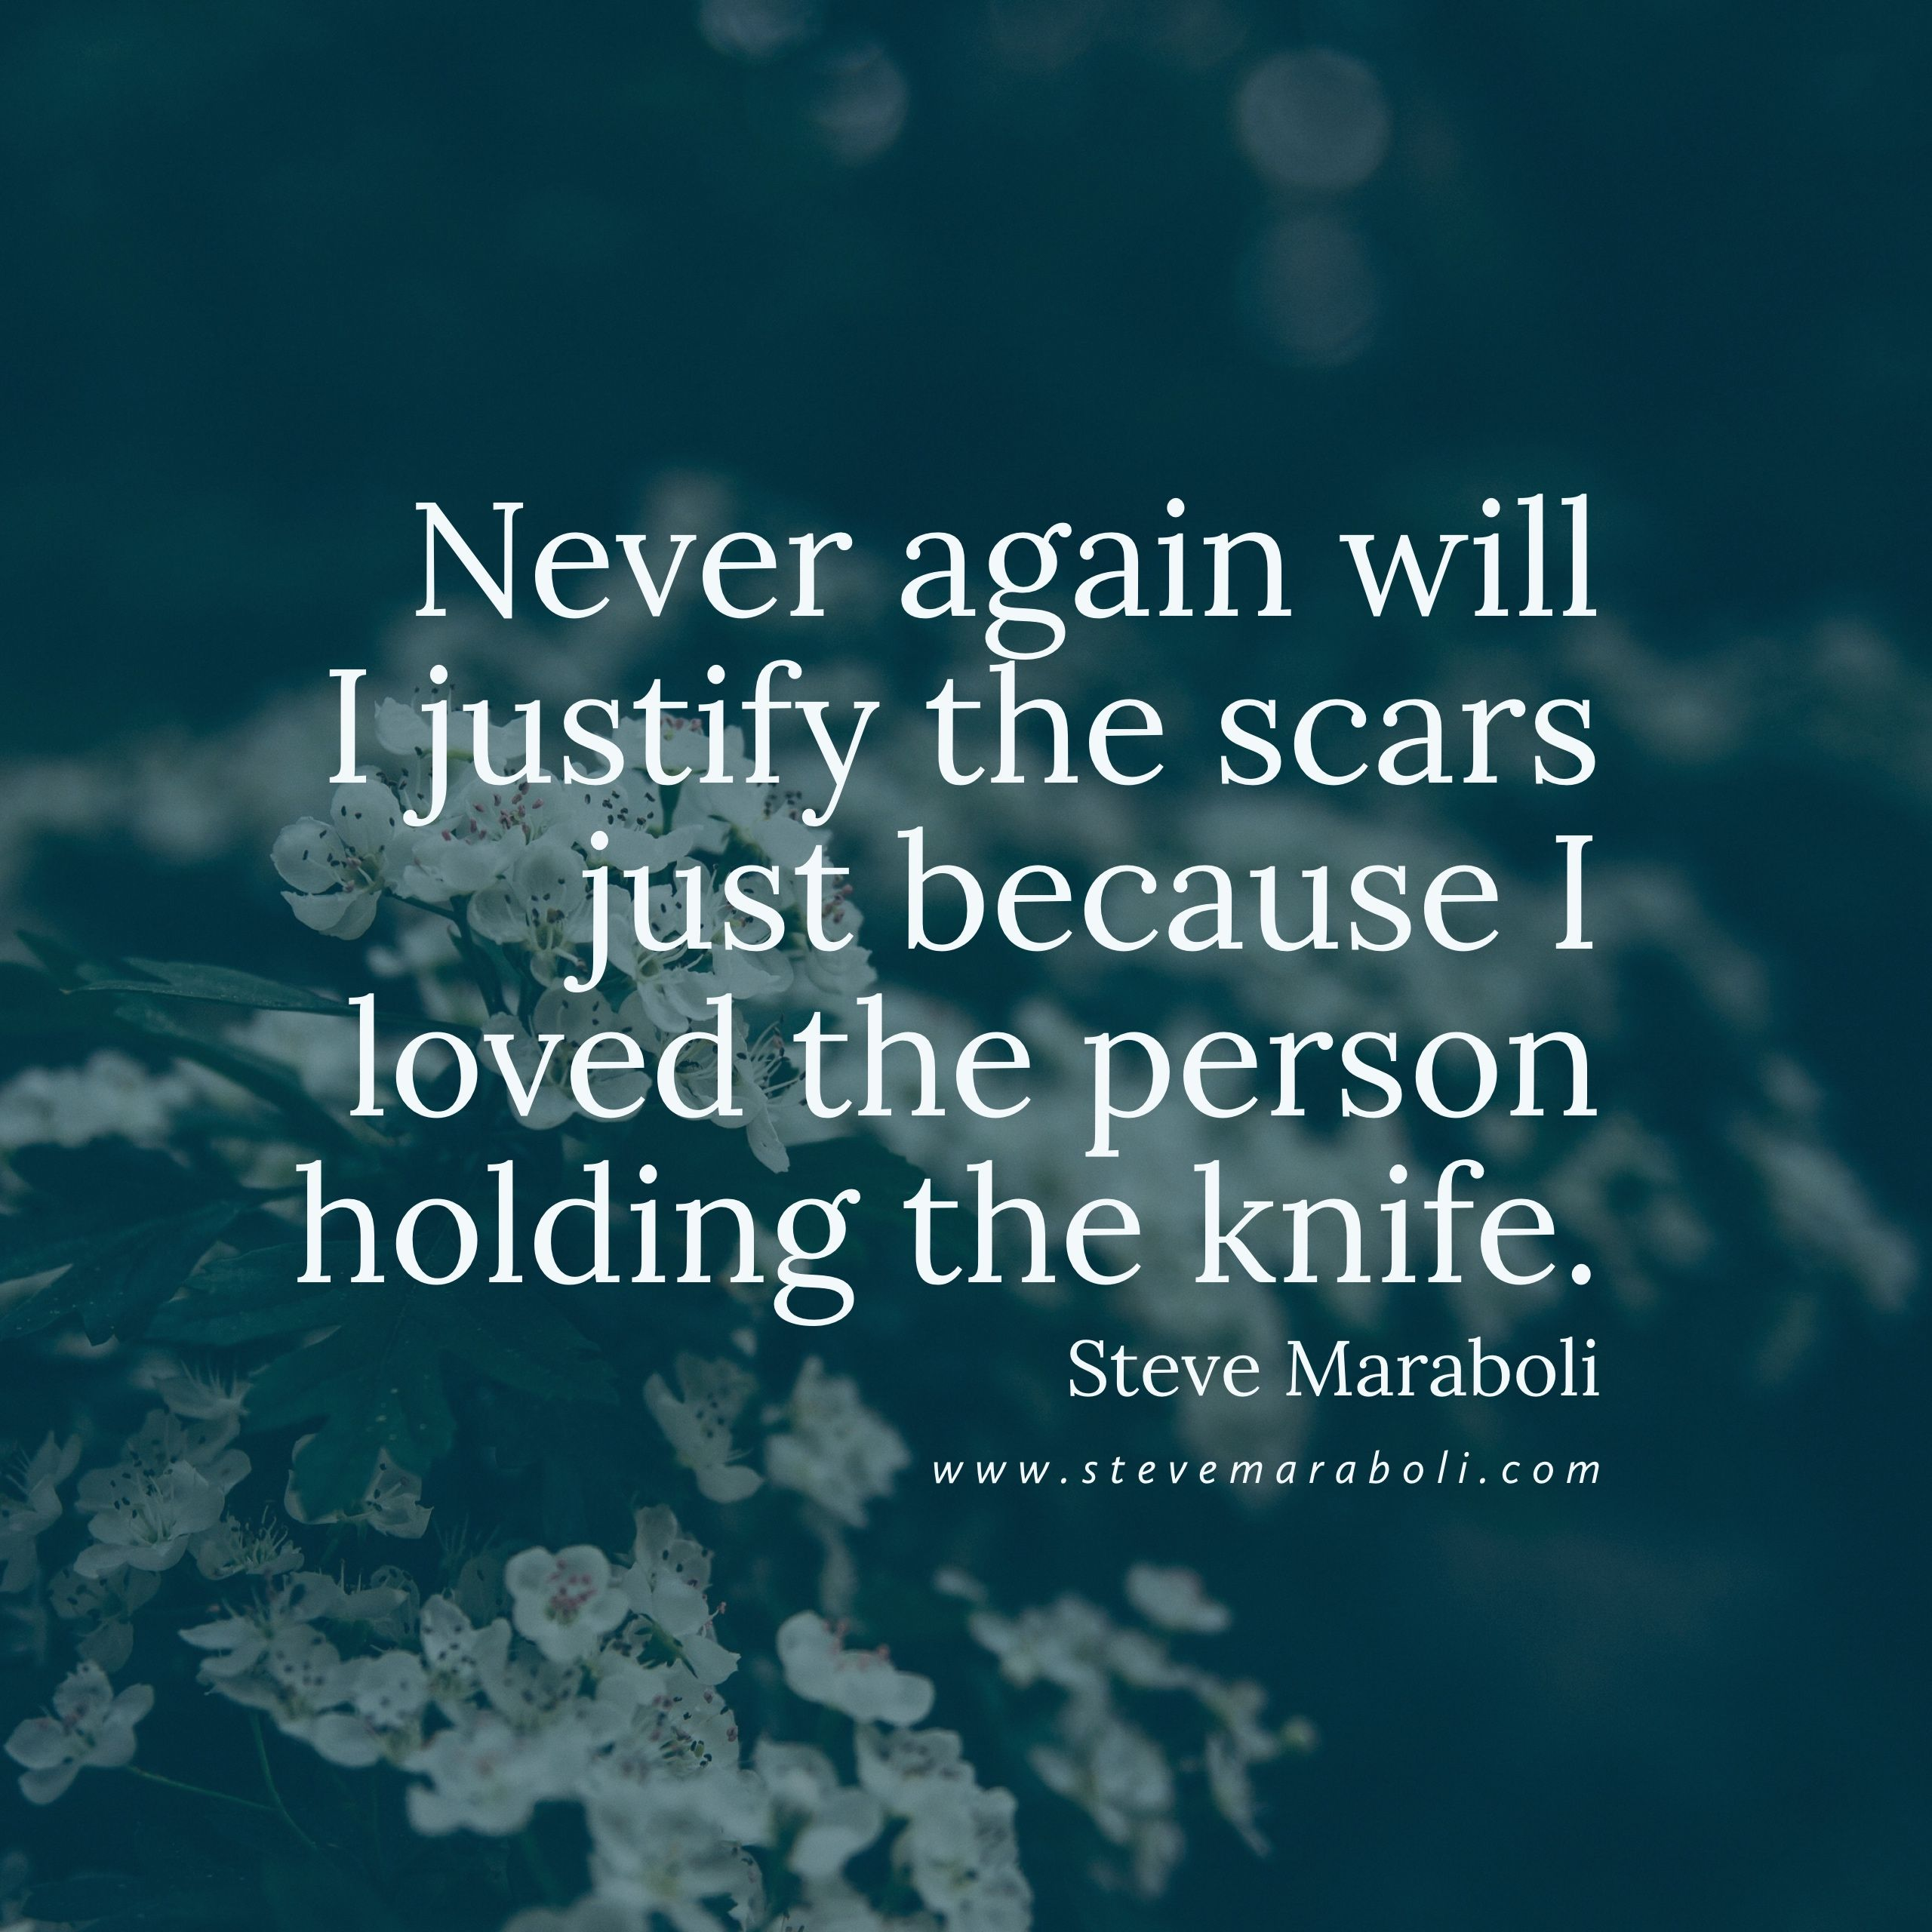 Never again will I justify the scars just because I loved the person holding the knife